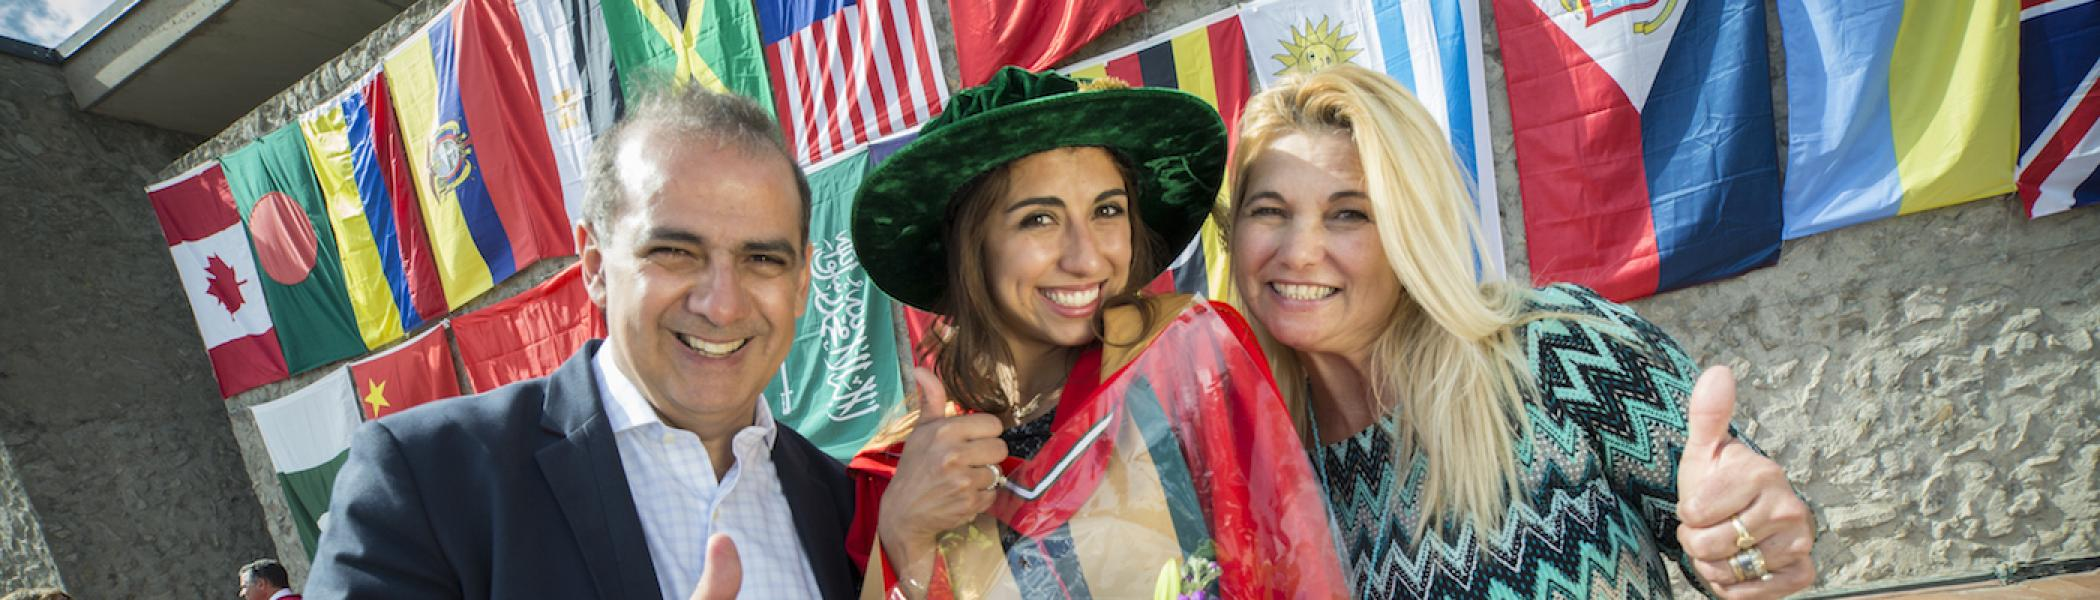 A graduate with her parents smiling and giving the thumbs up in front of a wall of flags